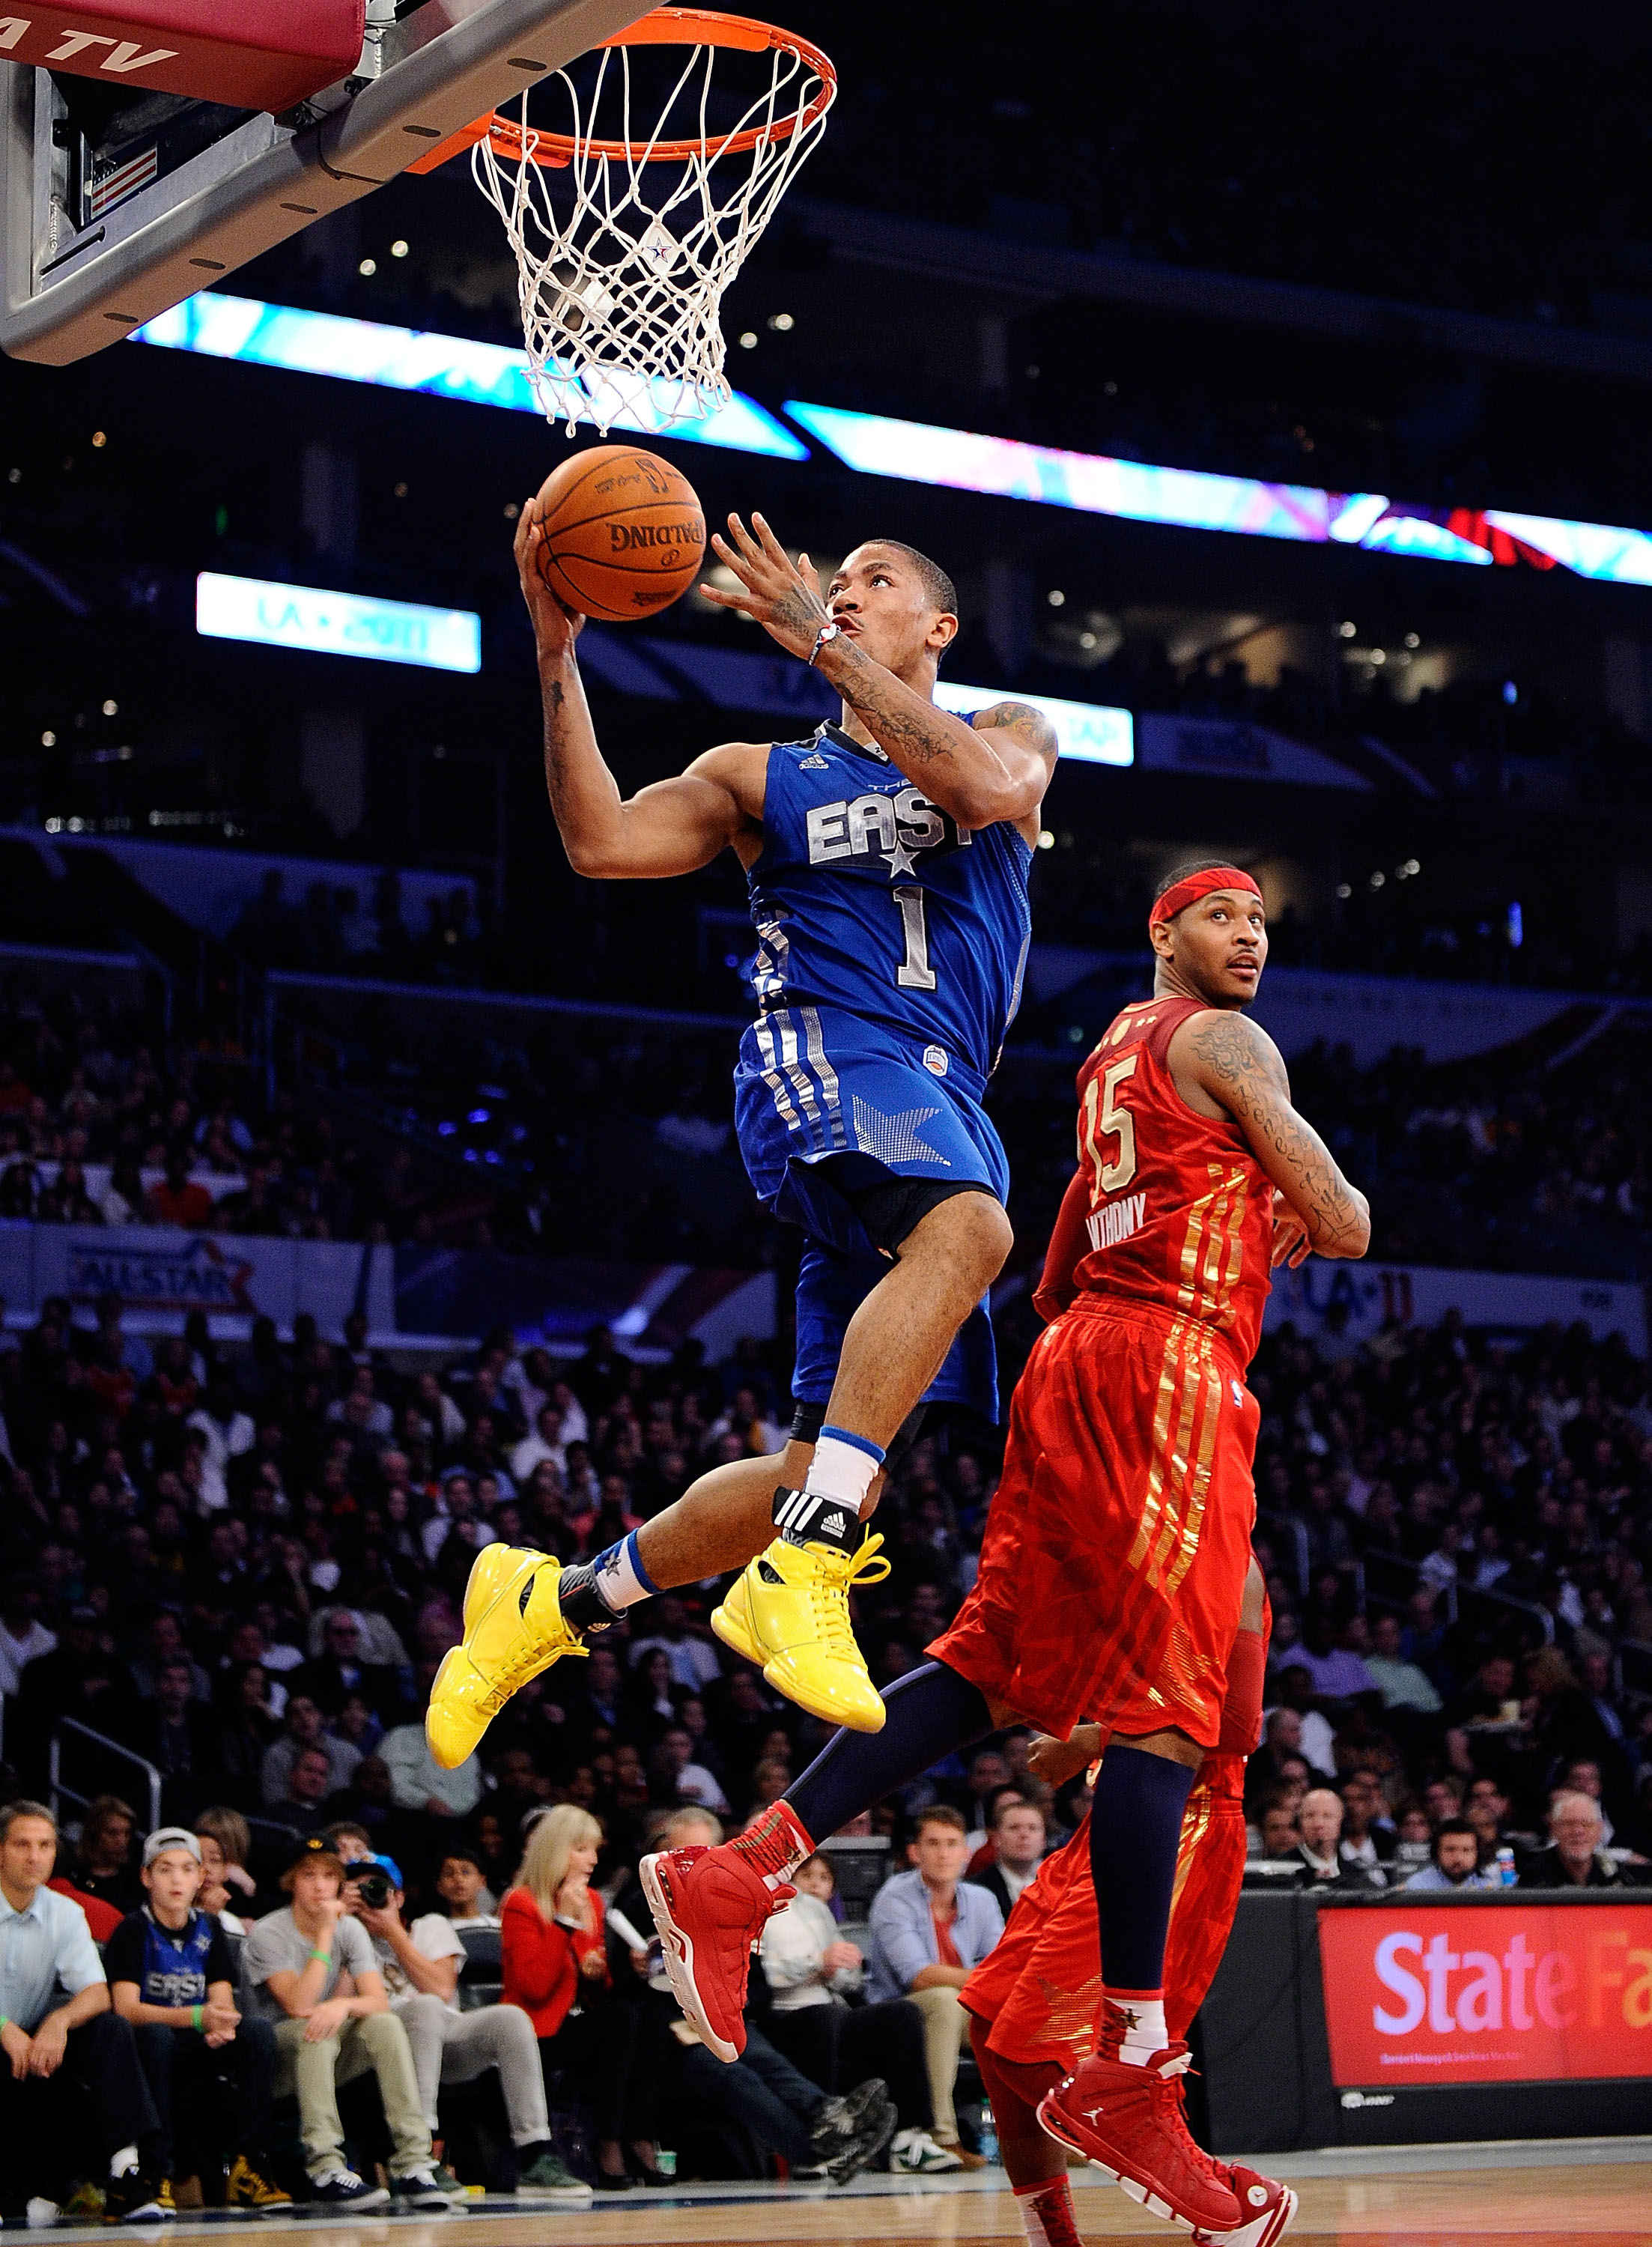 2011 NBA All-Star Game Best Plays - YouTube